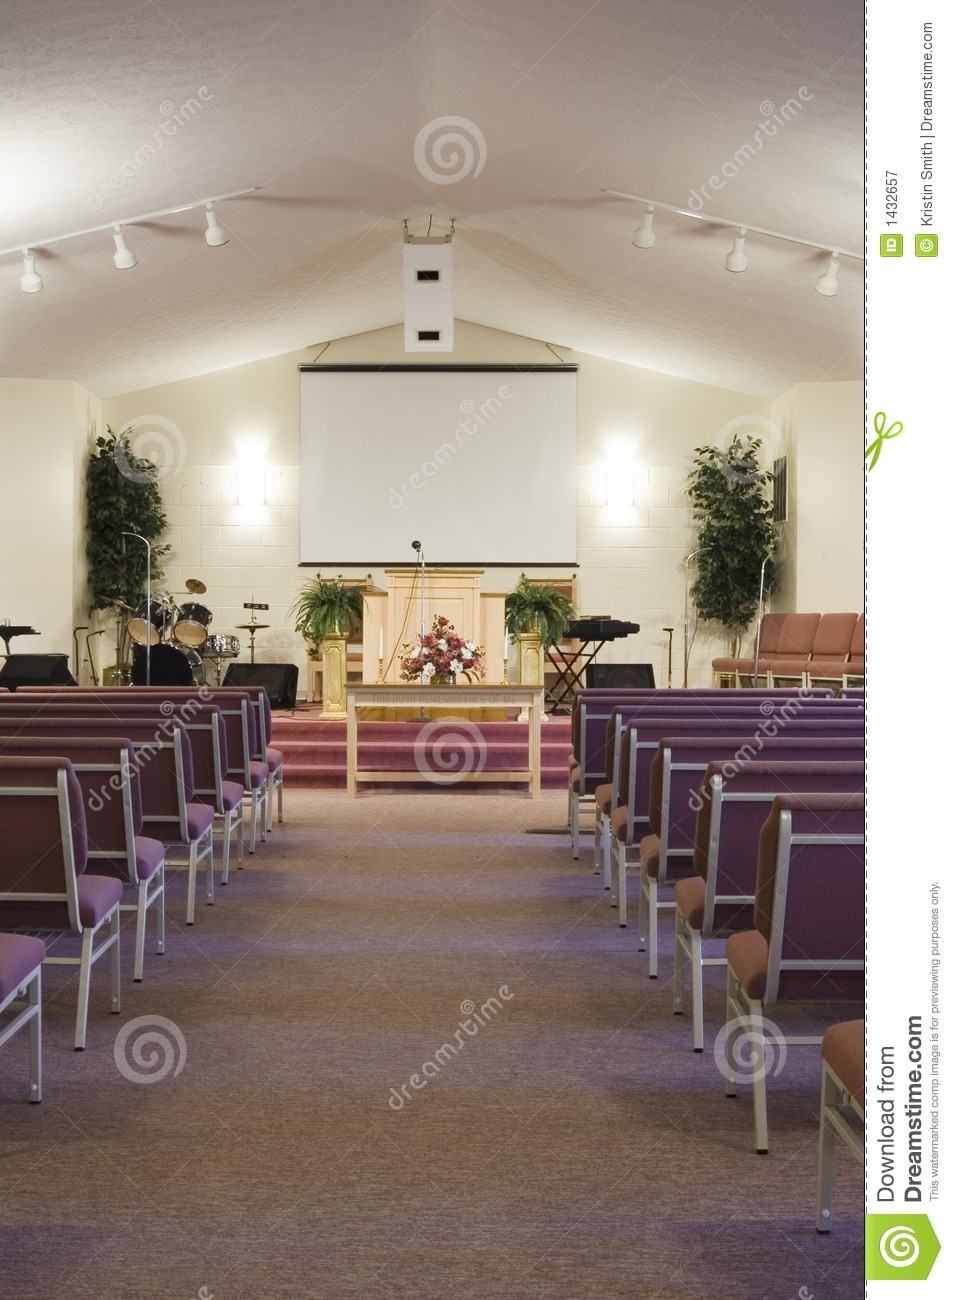 Church Interior Royalty Free Stock Photography Image